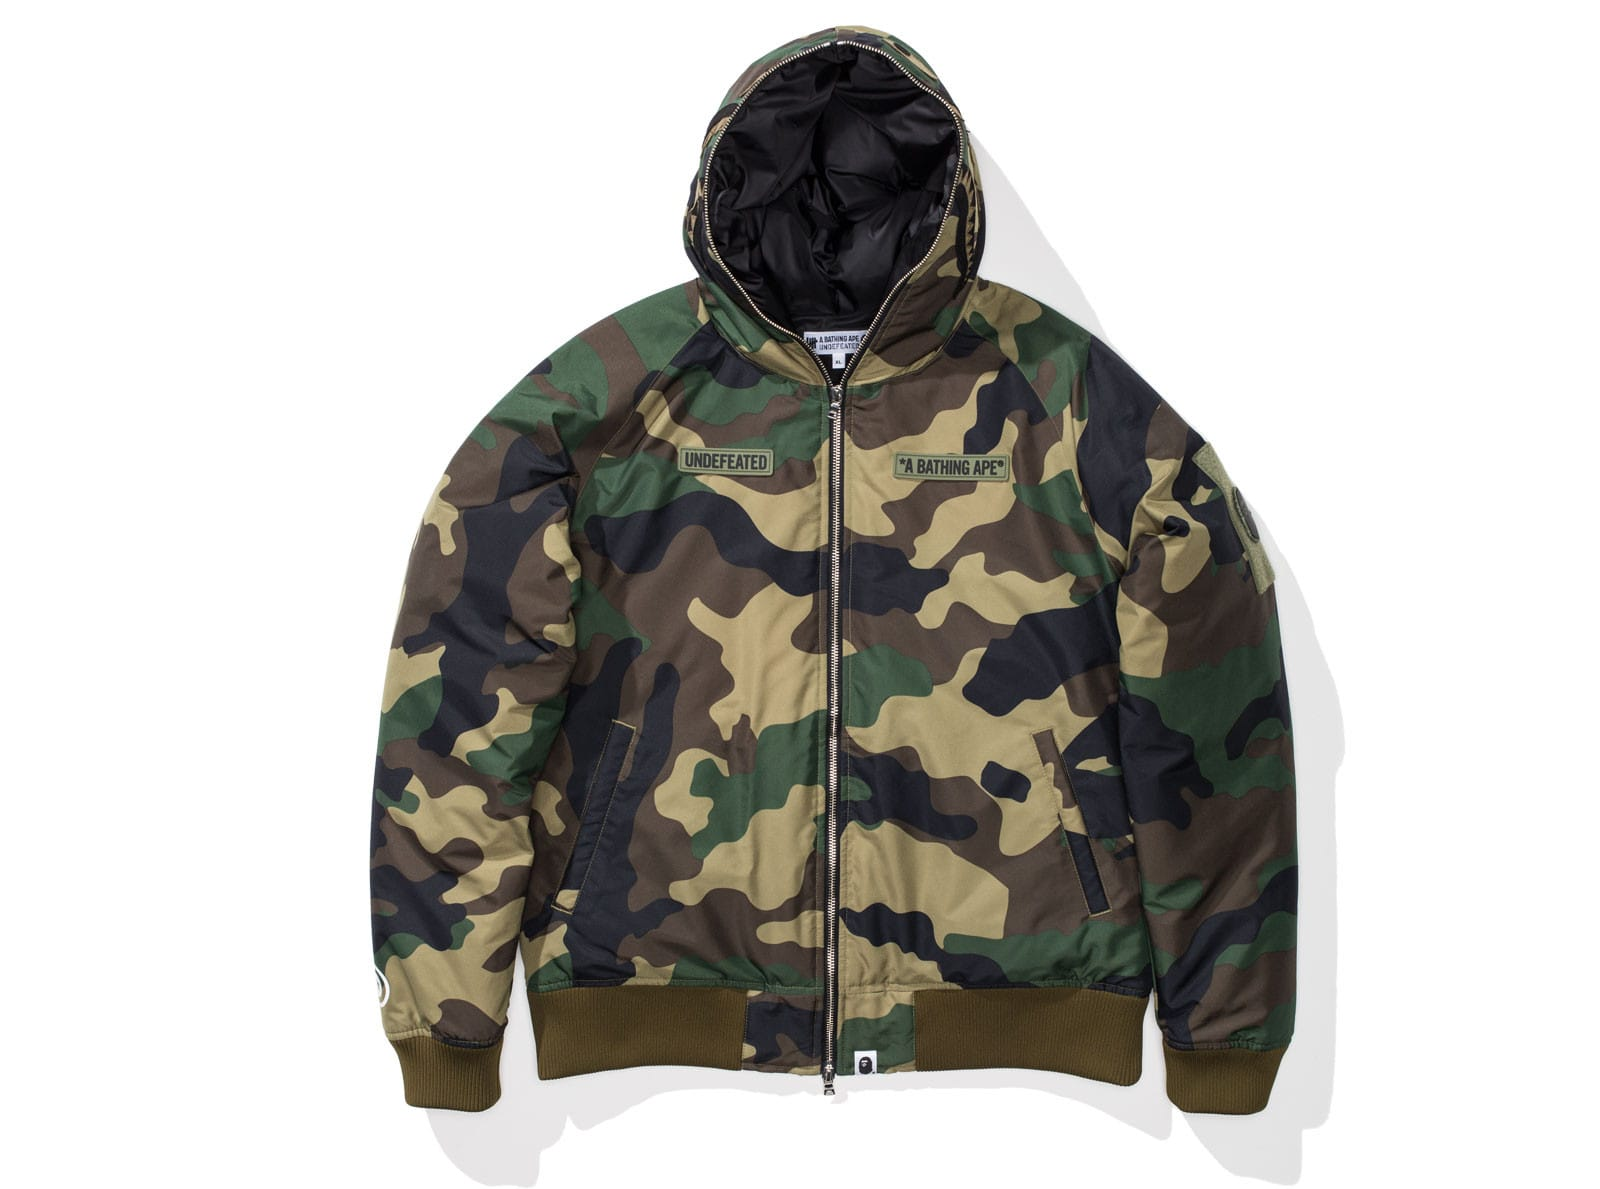 UNDEFEATED X BAPE WOODLAND CAMO SHARK DOWN JACKET